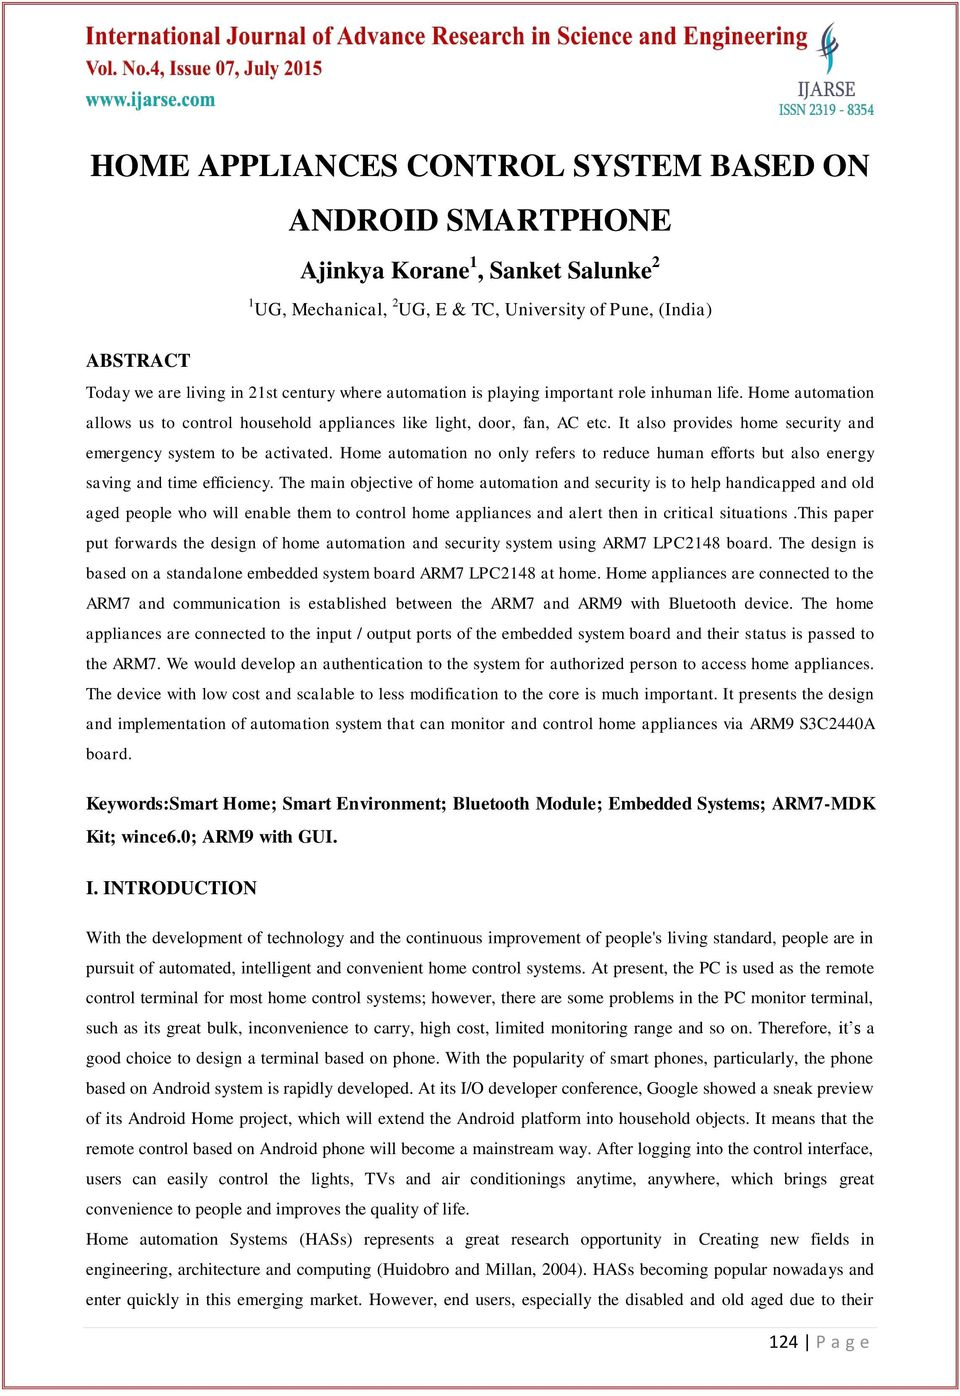 HOME APPLIANCES CONTROL SYSTEM BASED ON ANDROID SMARTPHONE - PDF